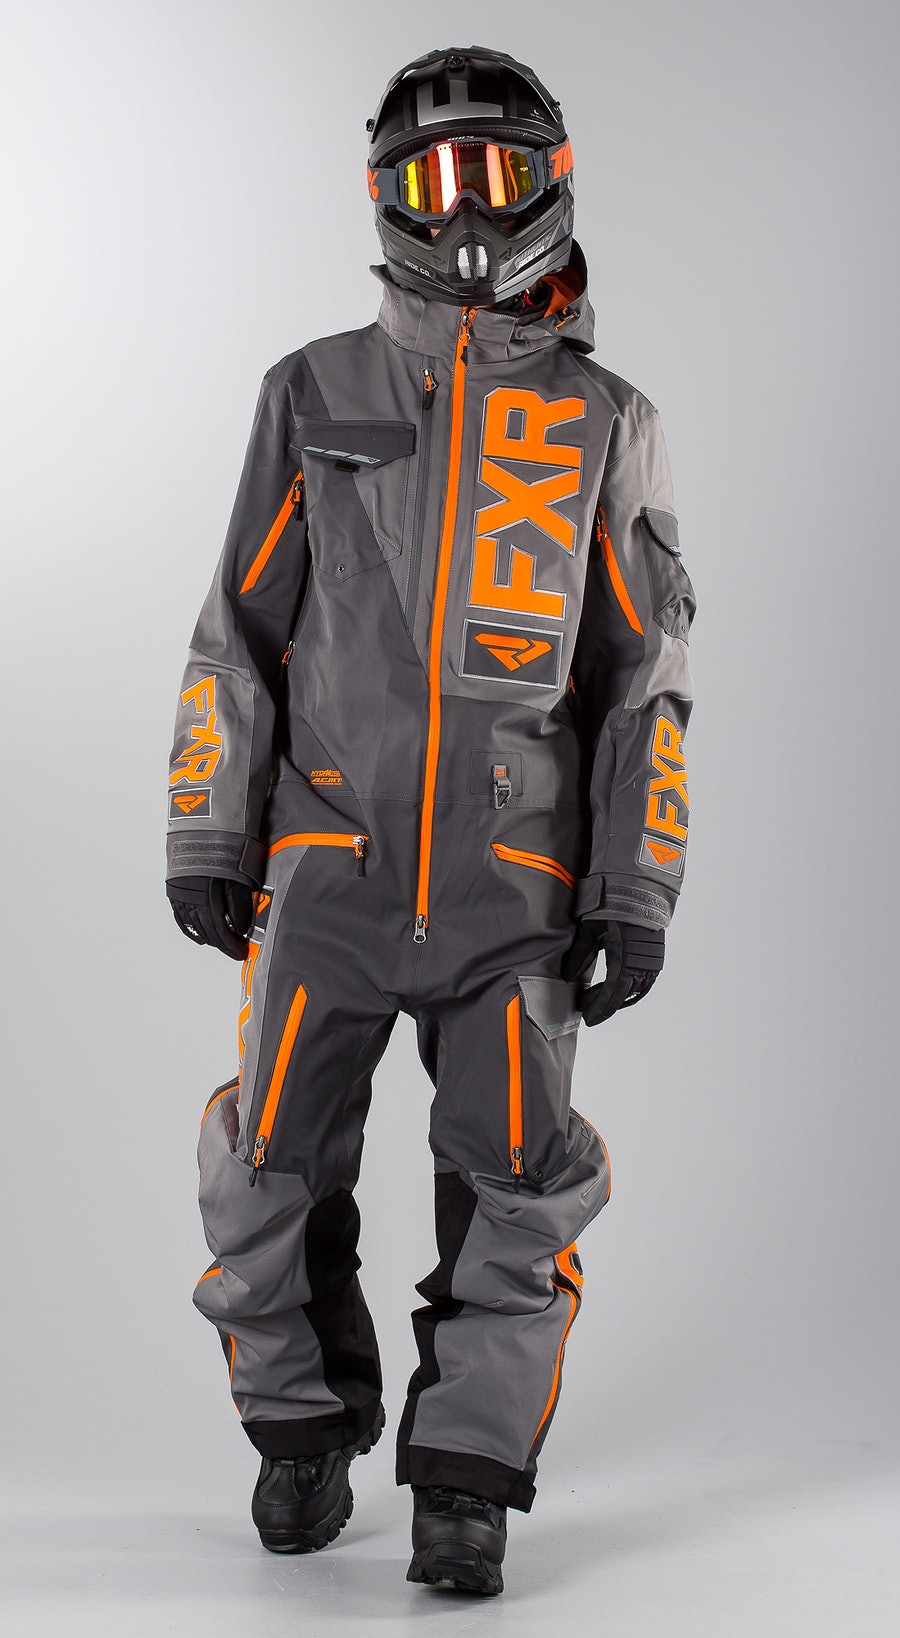 FXR Ranger Instinct Lite Charcoal/Grey/Orange Snowmobile clothing Multi